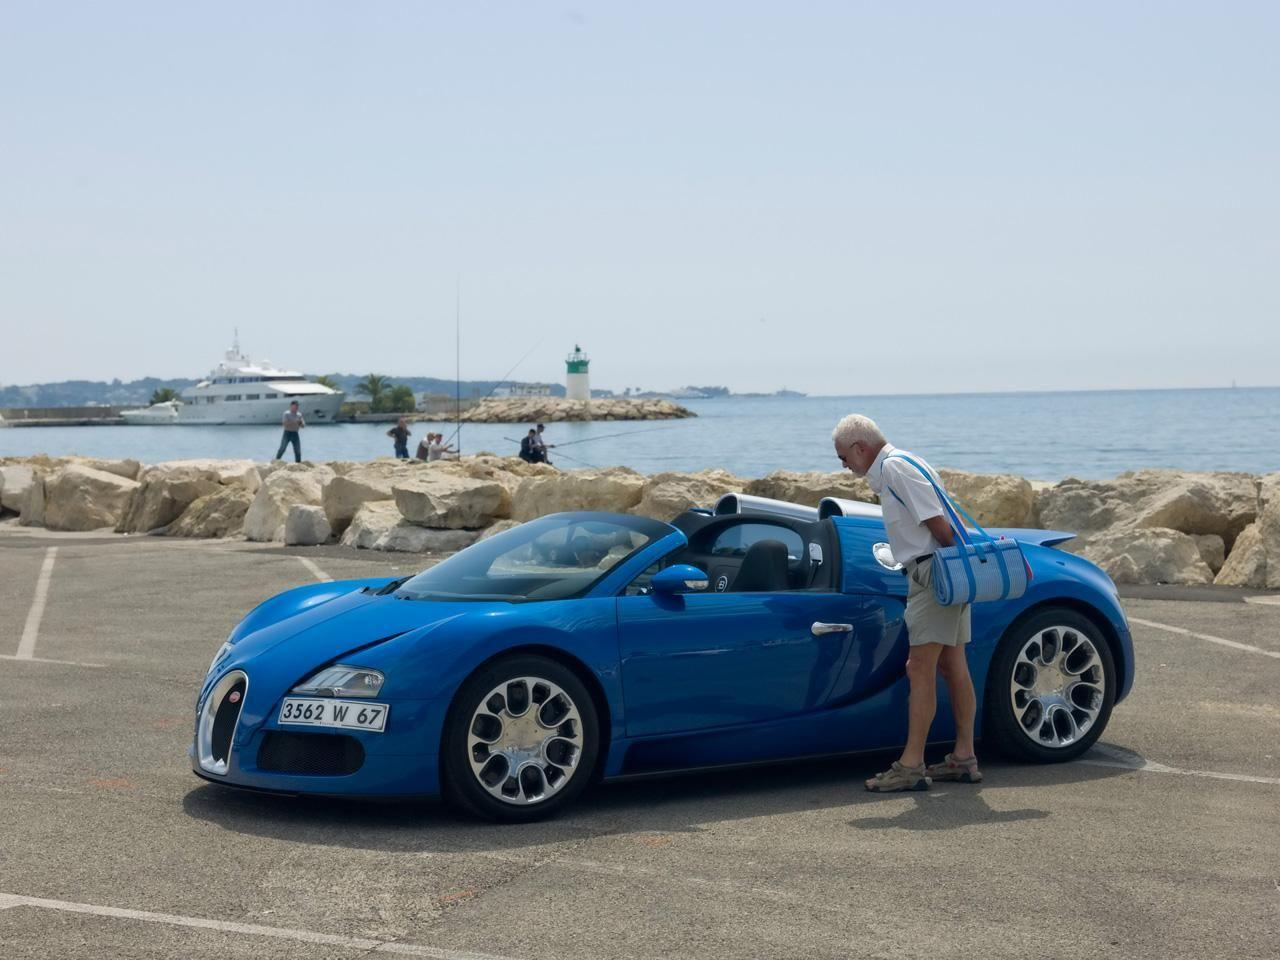 2010 Bugatti Veyron 16.4 Grand Sport in Cannes Wallpapers by Cars